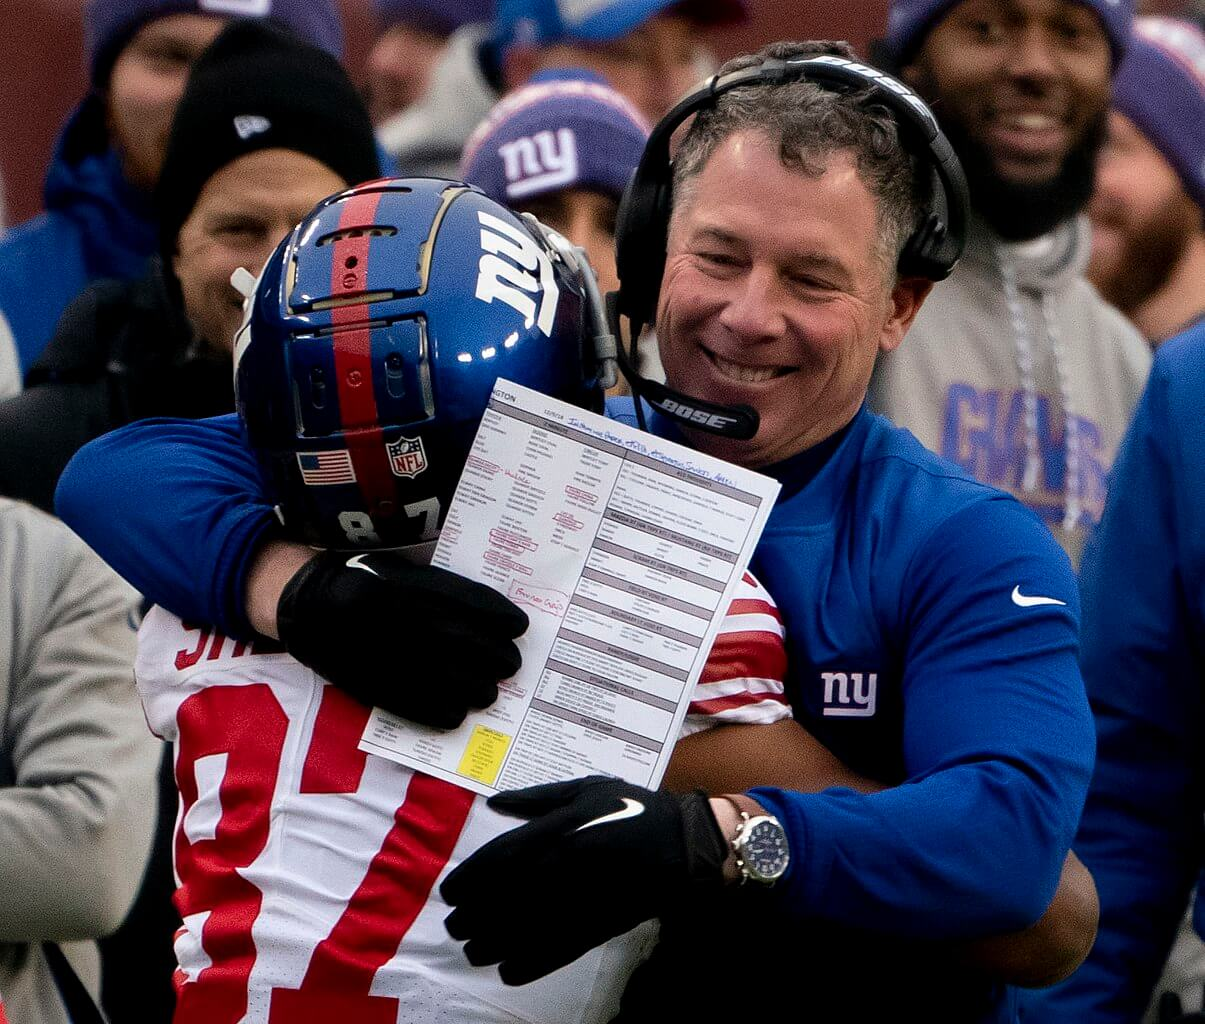 2019 Nfl Rookie Of Year Odds Saquon Barkley Favorite Over: Giants Saquon Barkley Back On Top In Latest 2018 OROY Odds